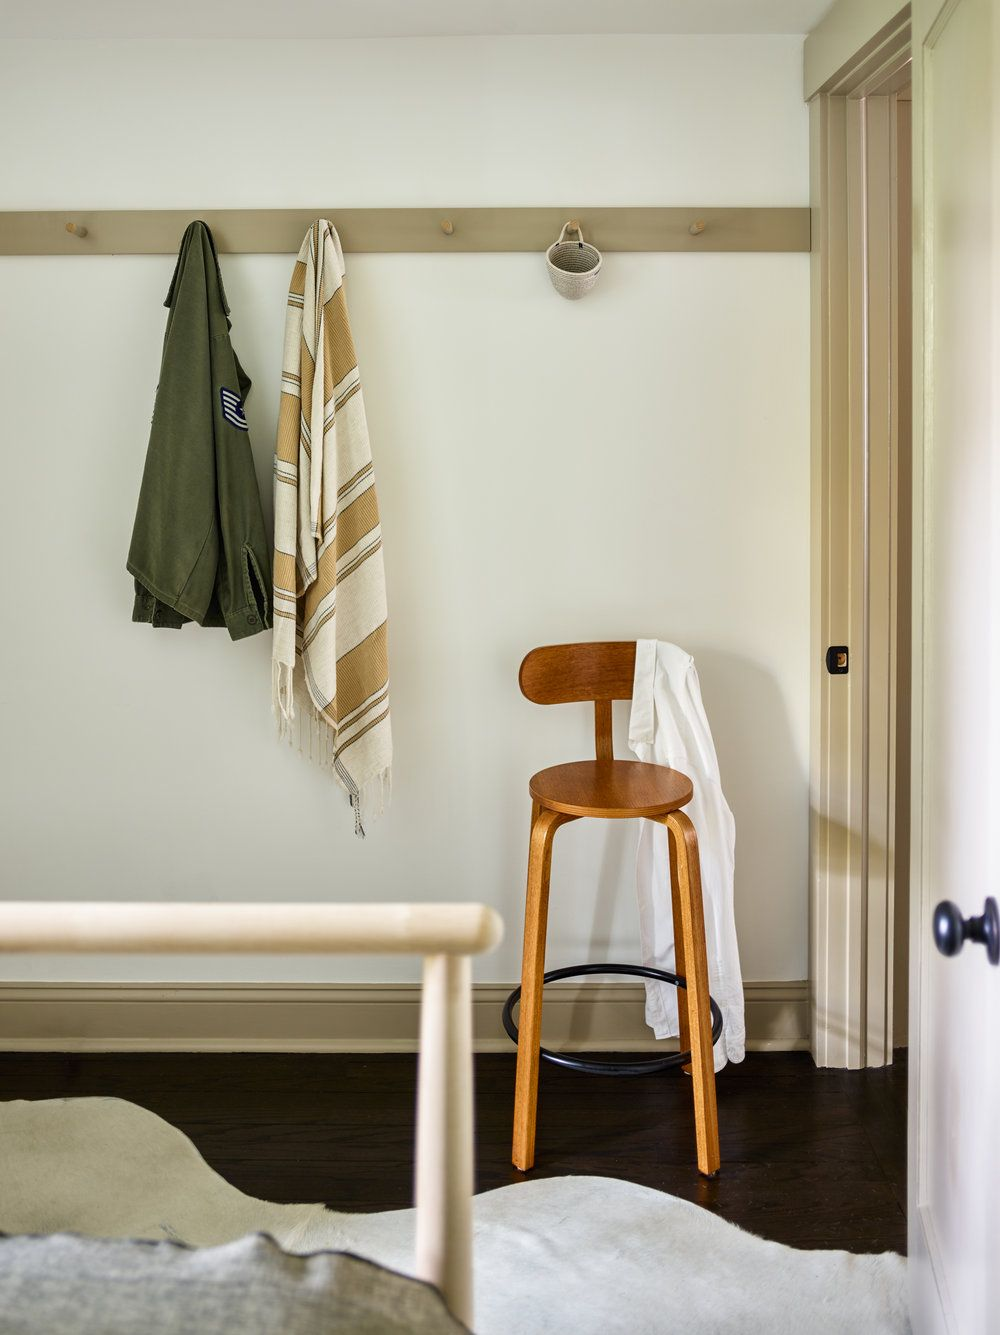 small stool detail + white cowhide rug + hook design